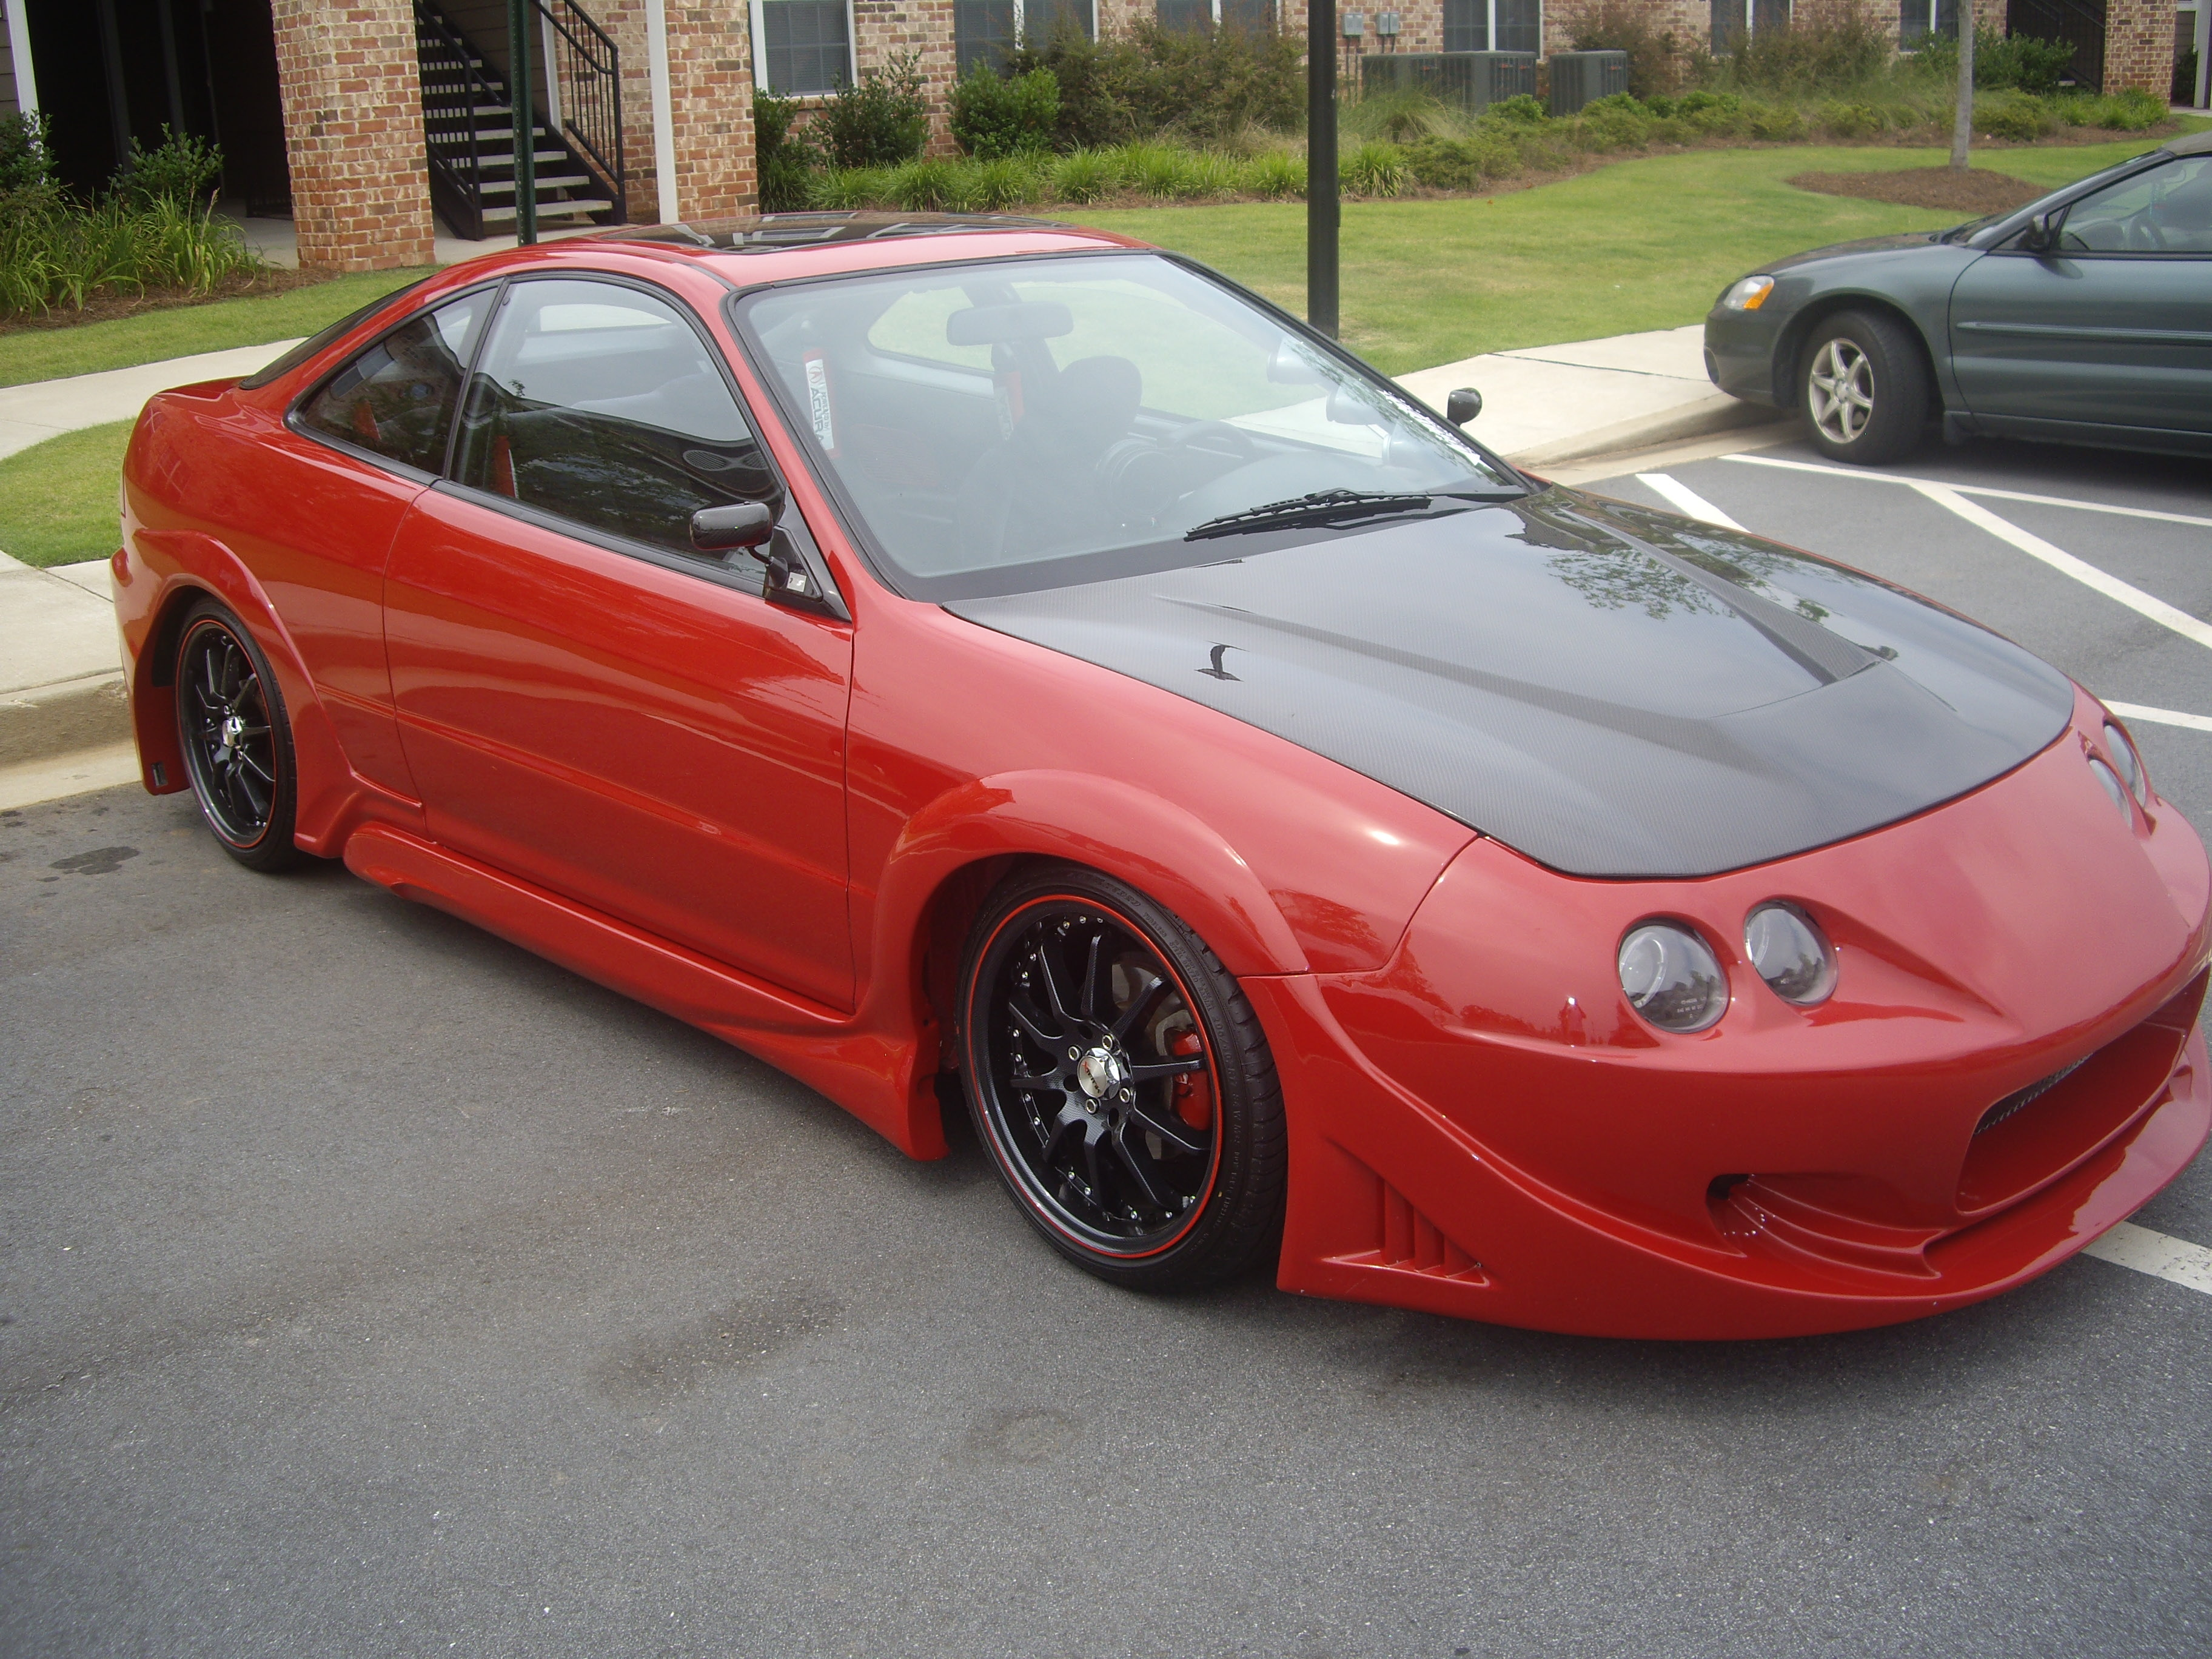 Another IcUlookinGS-R 1995 Acura Integra post... - 11796963